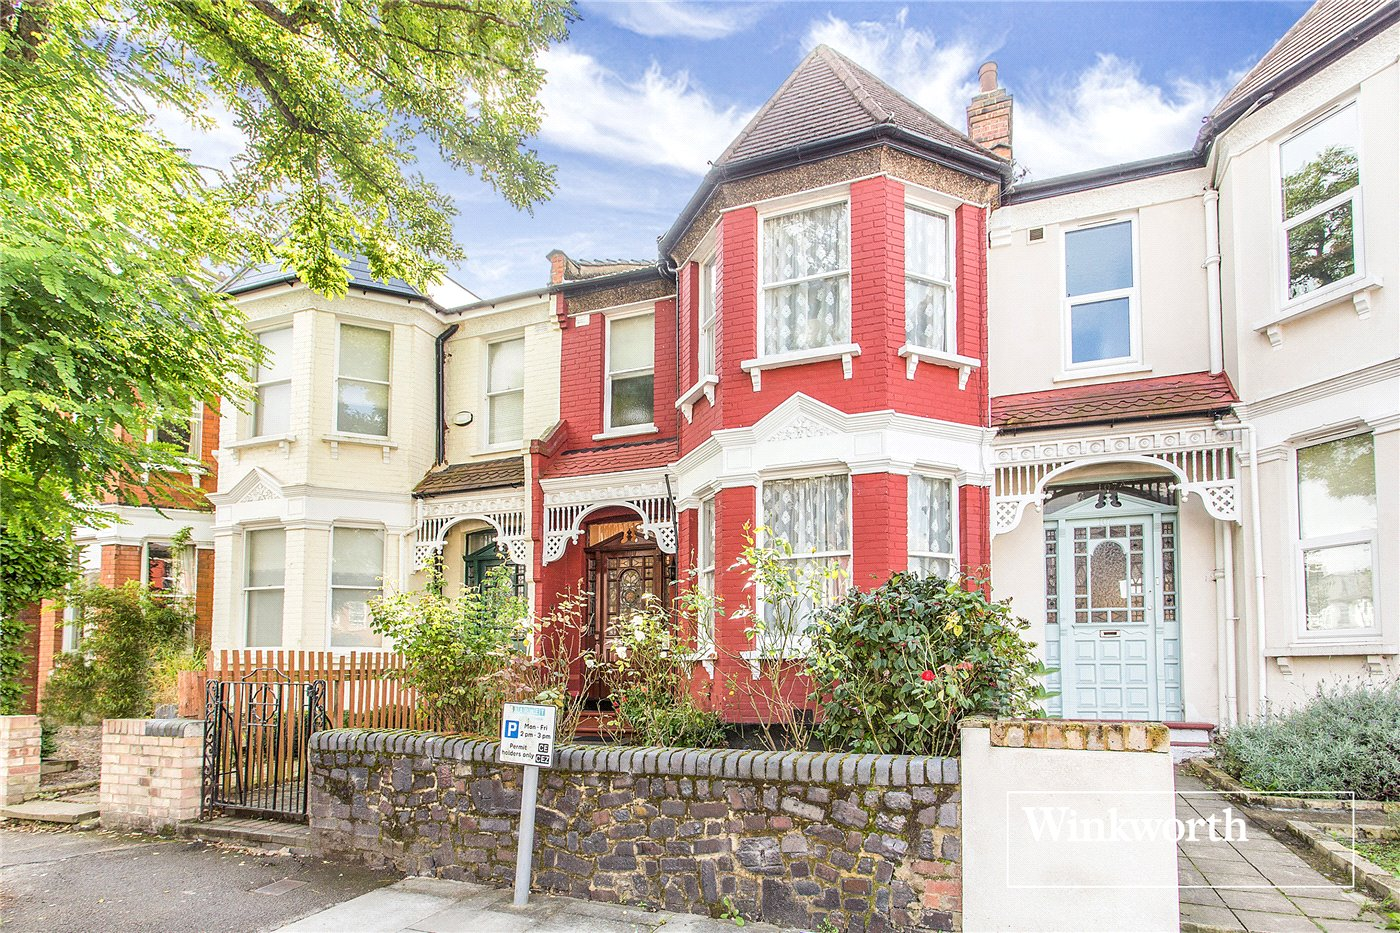 3 Bedrooms Terraced House for sale in Station Road, Finchley, London, N3